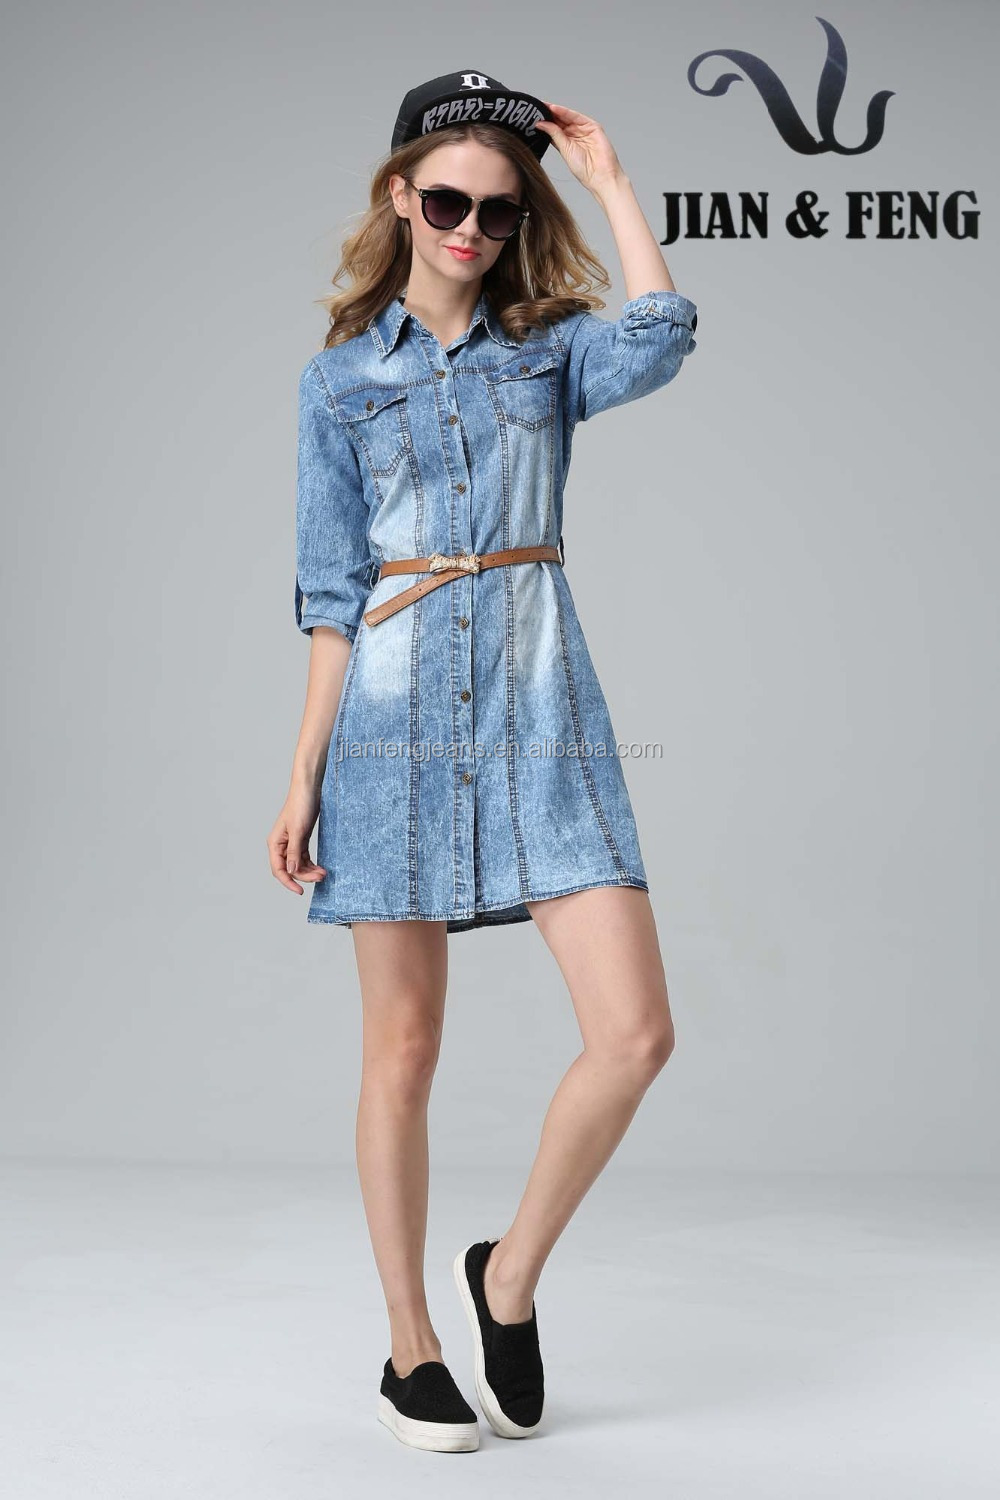 australia girls sex best selling factory wholesale price fashion embroidery  design women denim dress from china clothes f2c070ade